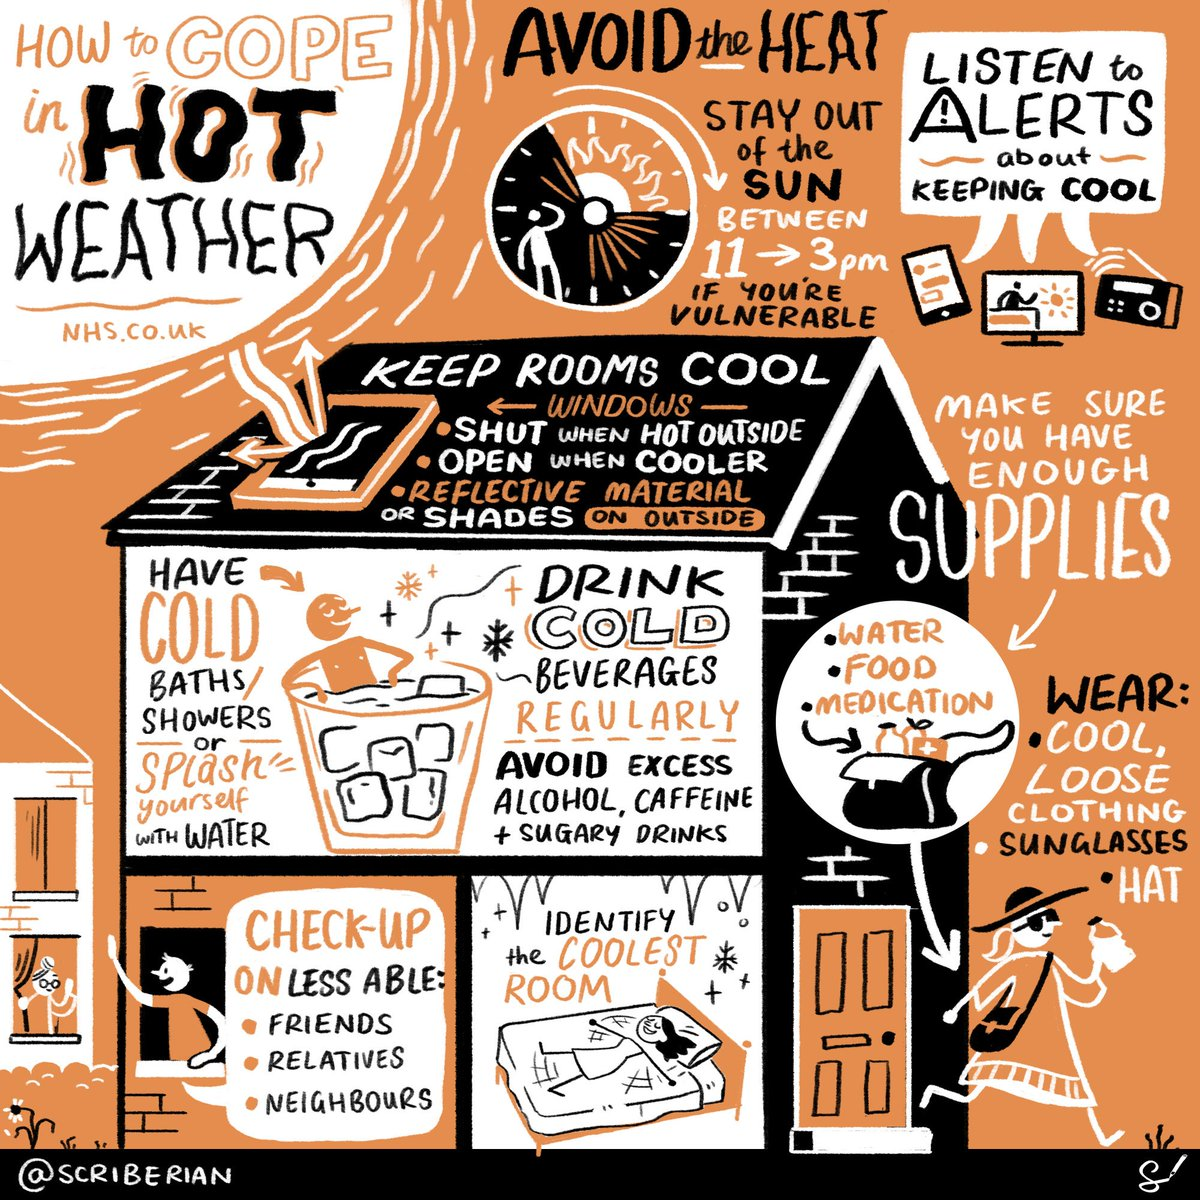 Traveling in a hot country or staying in the UK this week? Follow this easy to understand and straight to the point illustration by @scriberian to #keepcool in hot weather 🌡️ #heatwaveuk